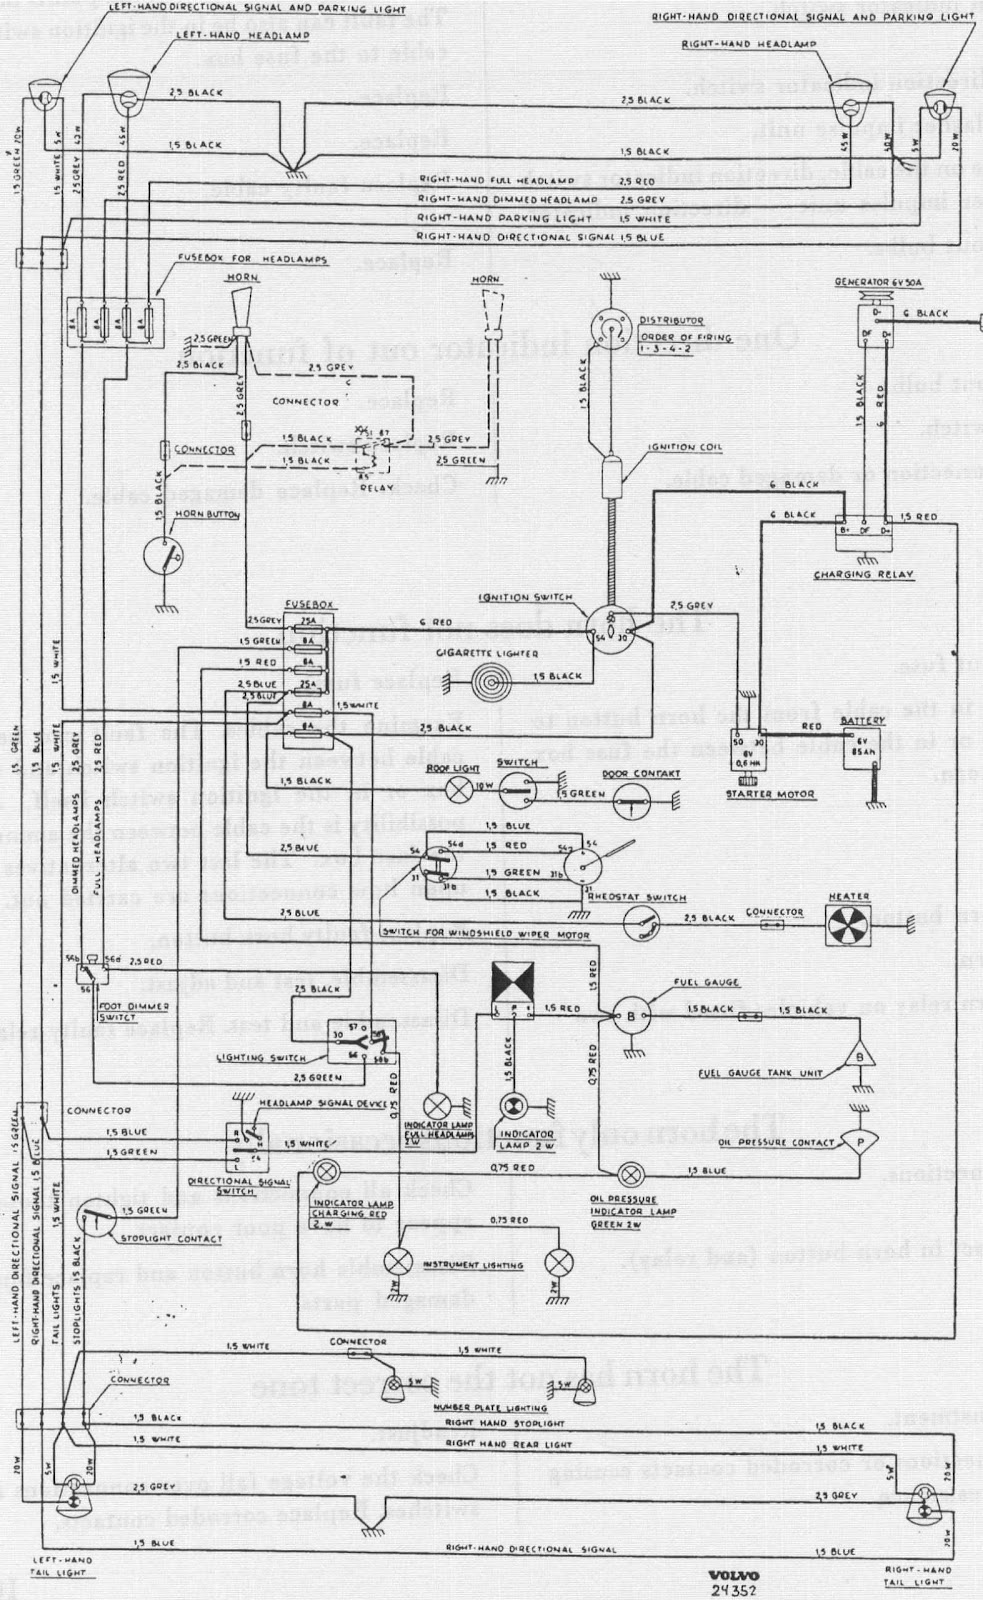 Volvo Vnl Truck Wiring Diagrams Diagram 2000 Mack Awesome V4 0 Photo Electrical And 1995 Semi Luxury